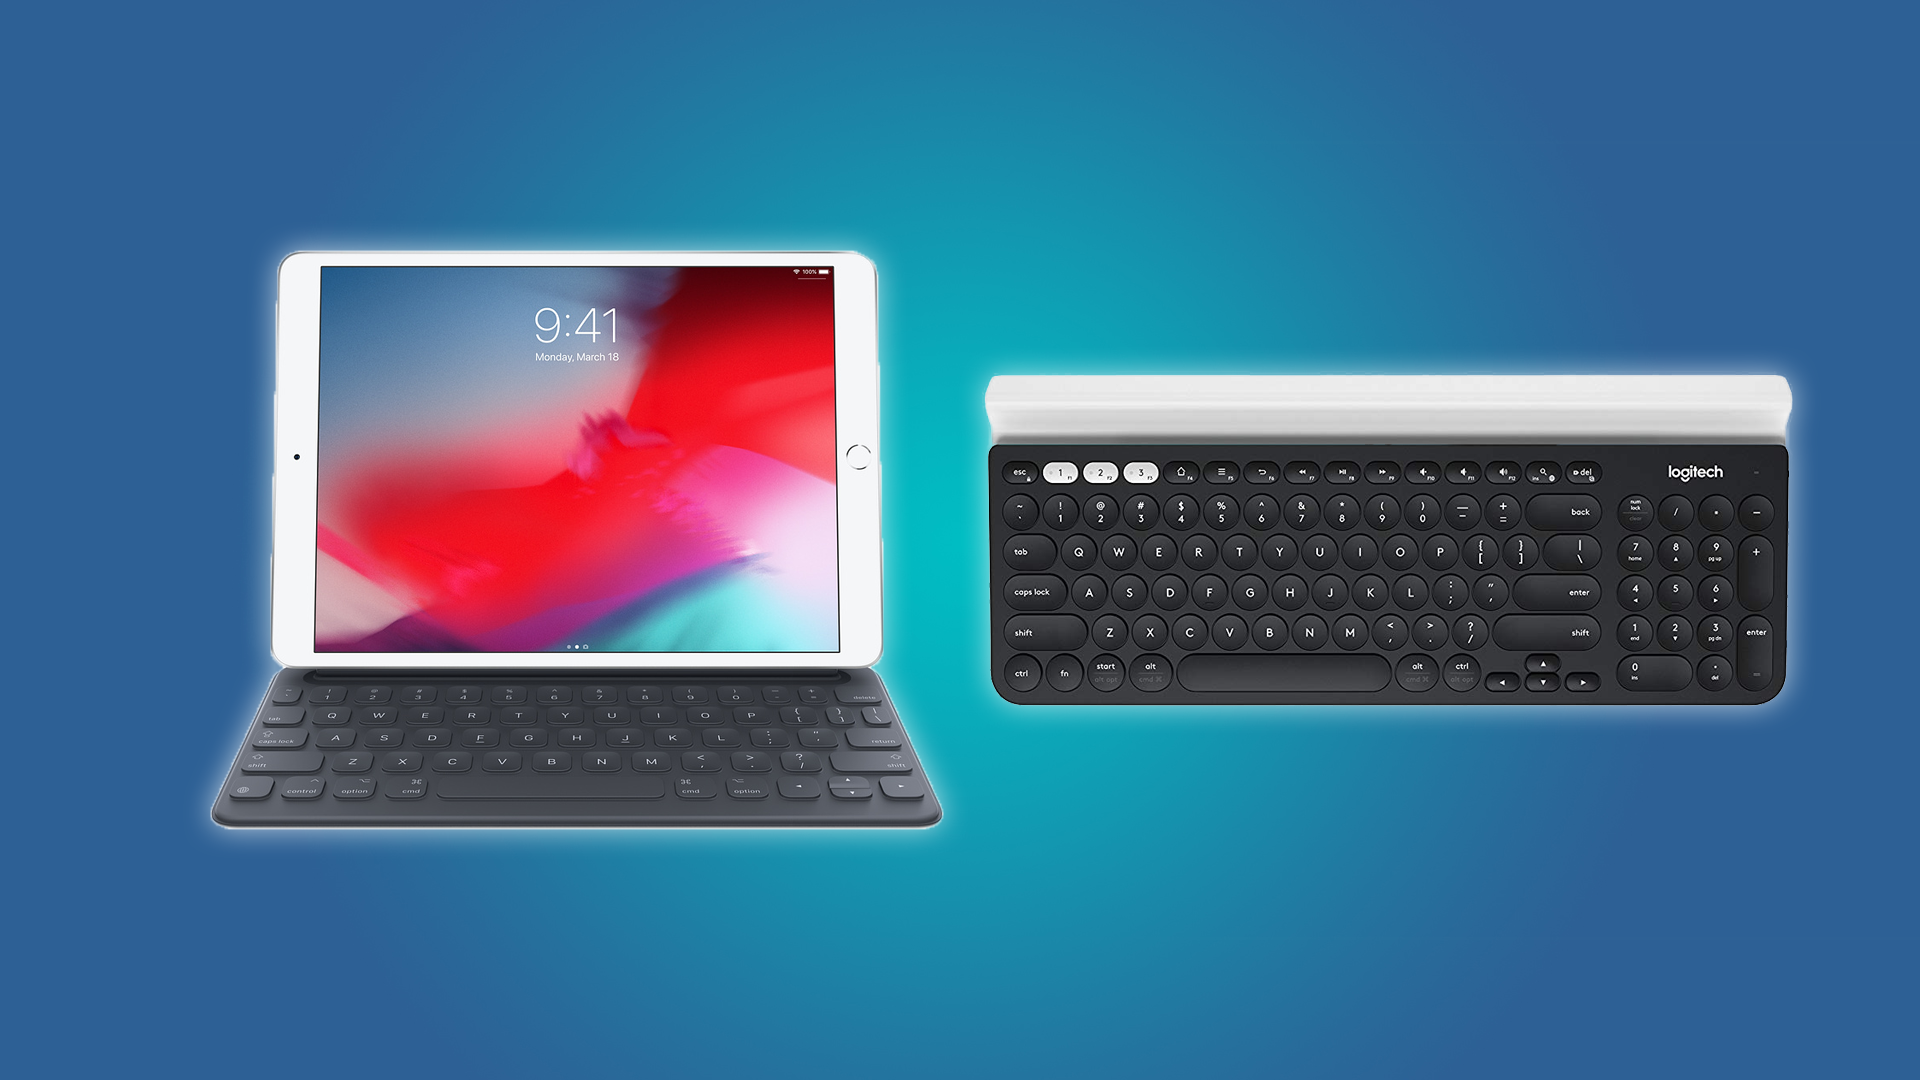 An official Apple keyboard and the Logitech K780